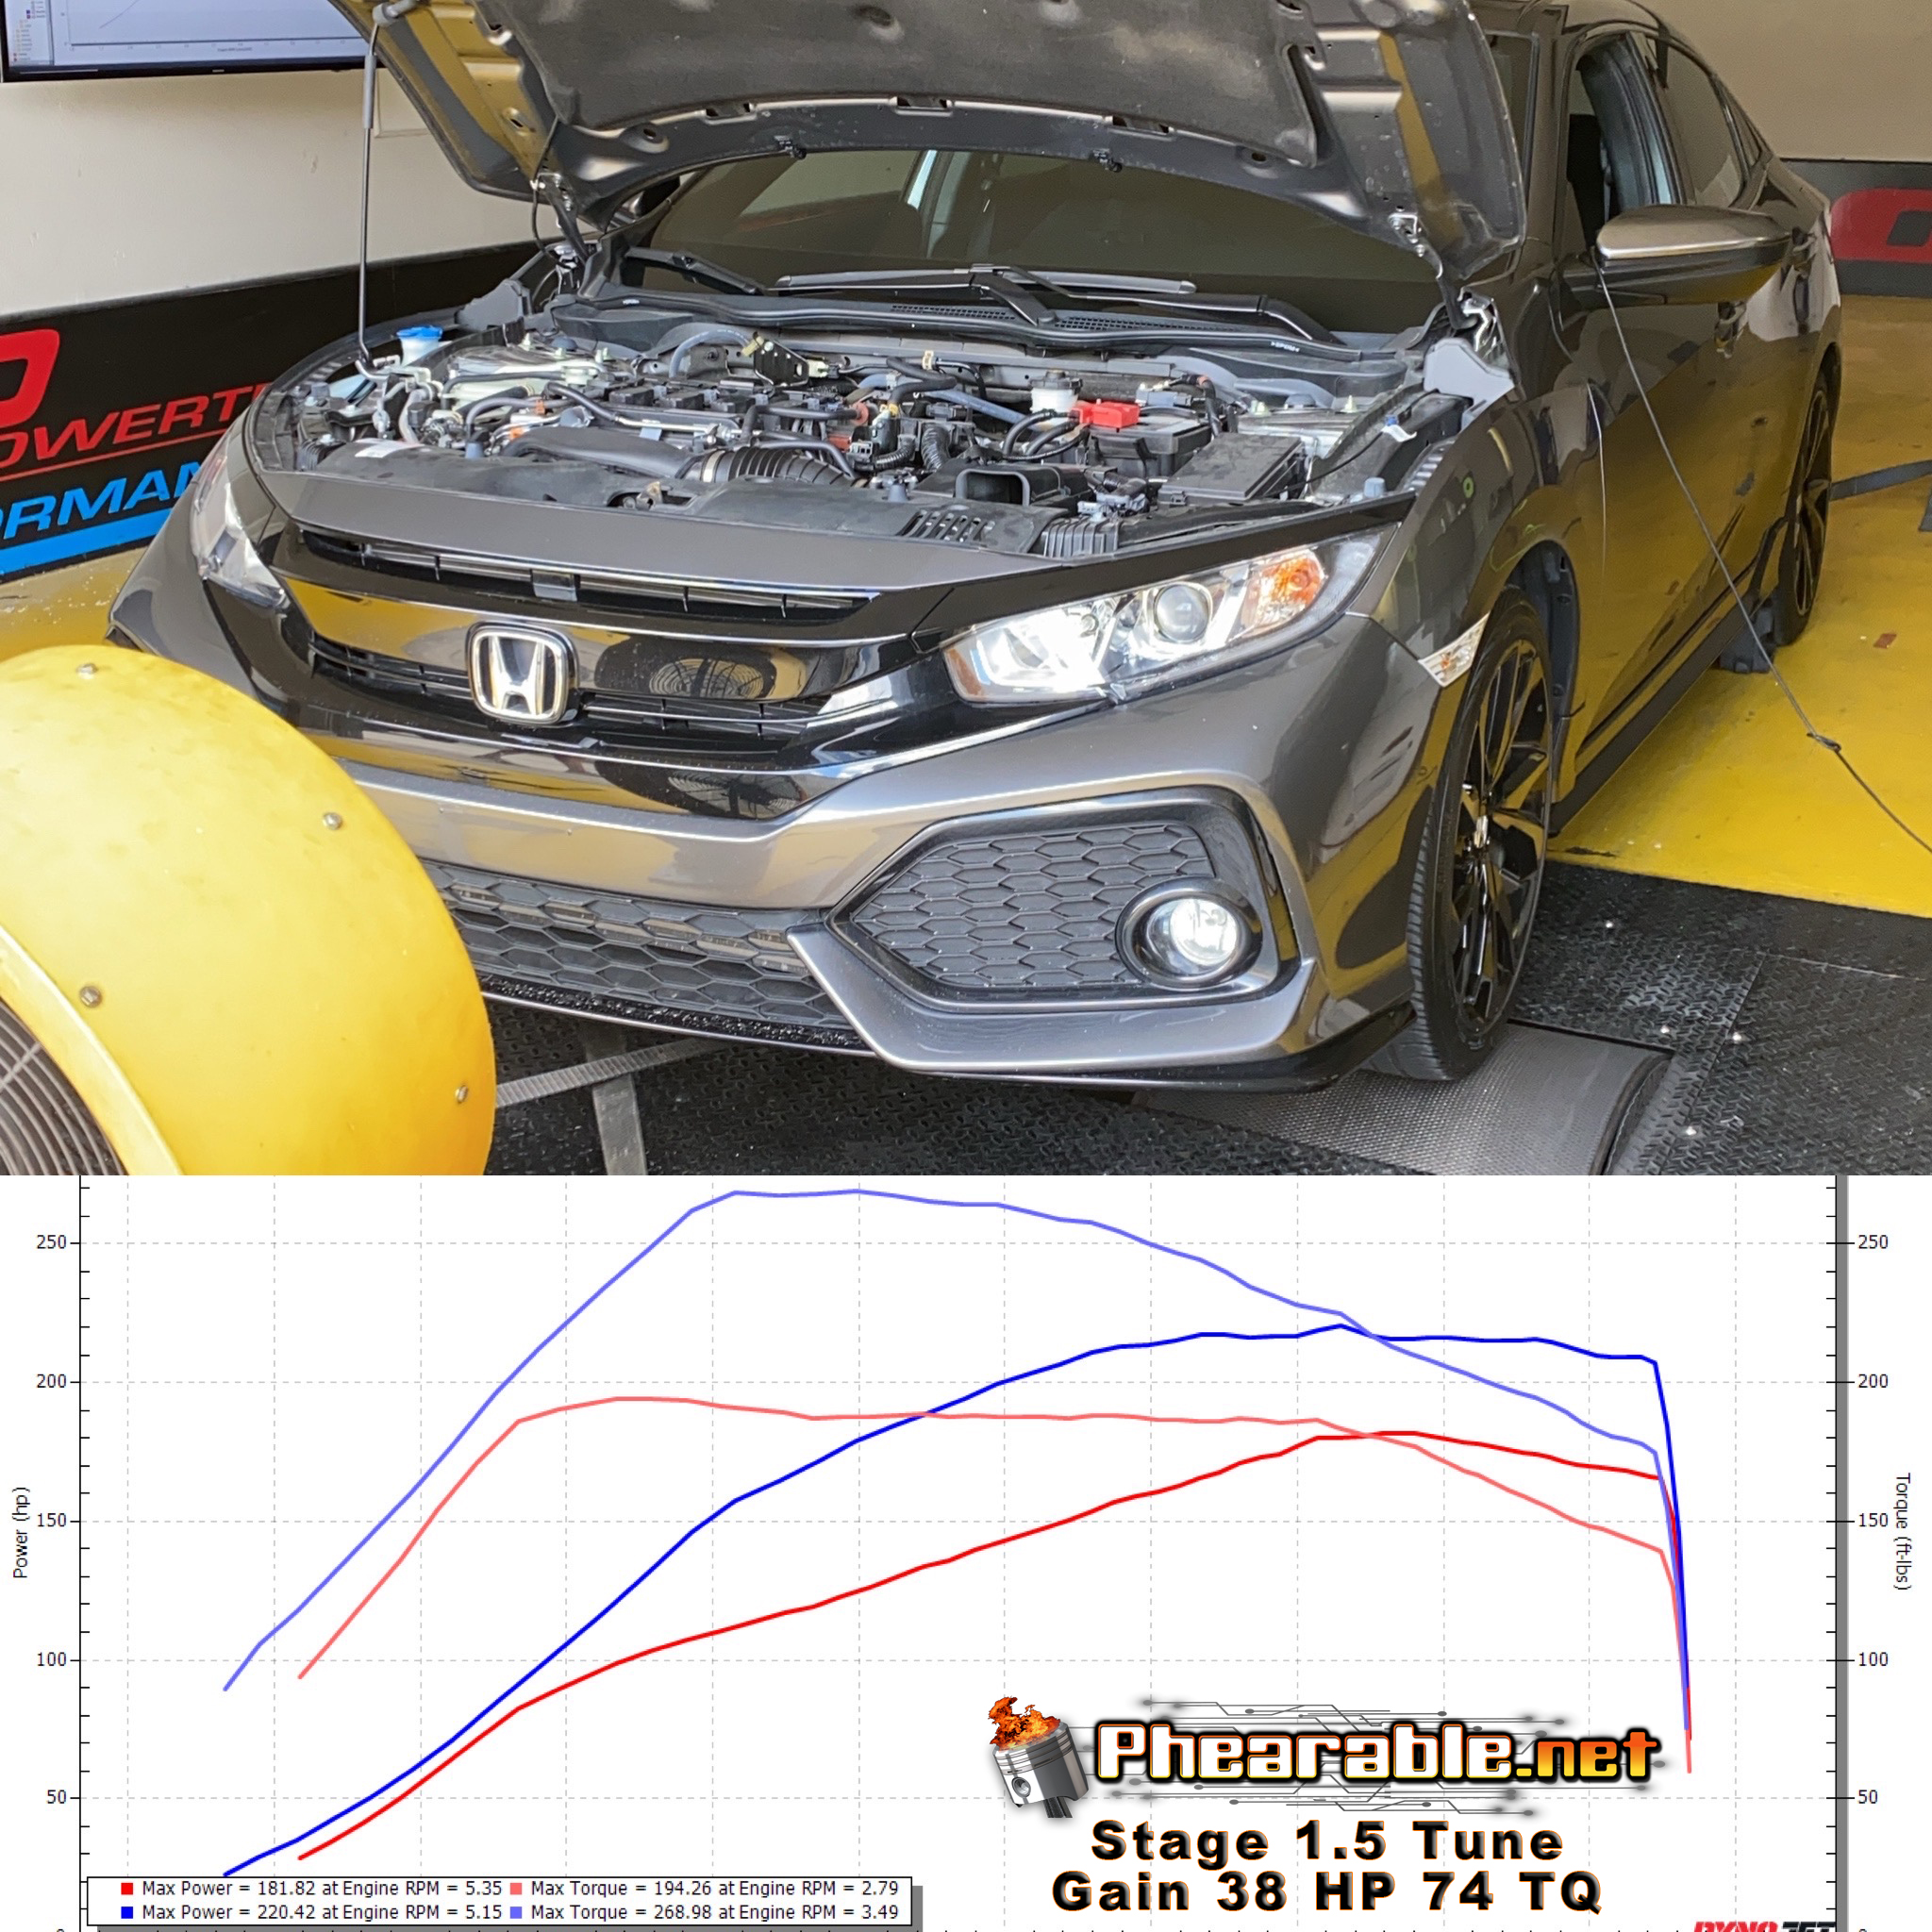 Phearable Stage 1.5 CIVIC NON SI